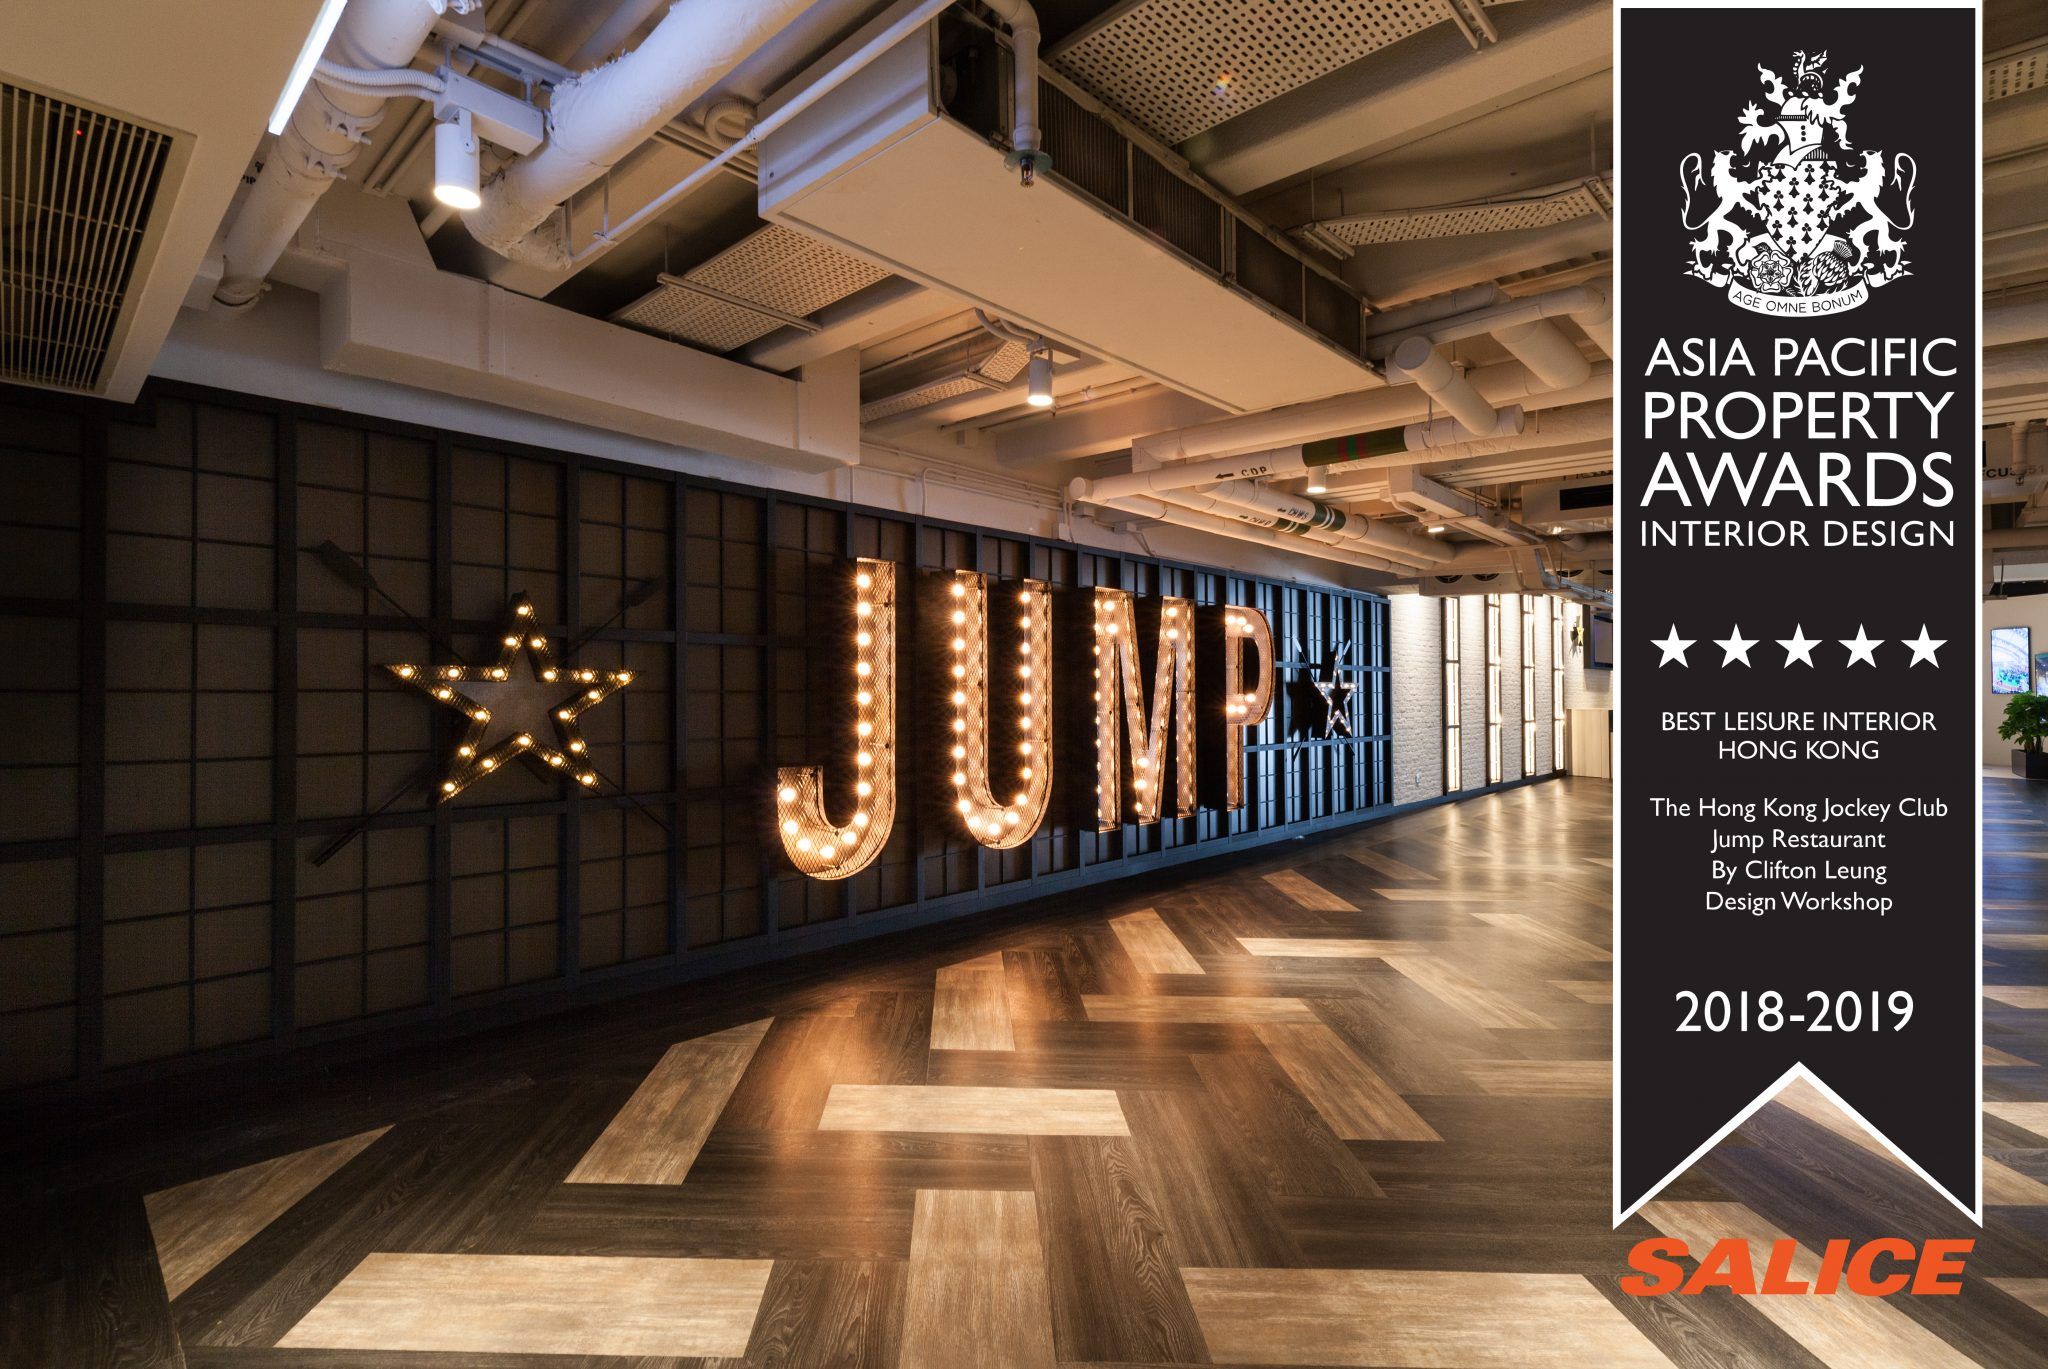 The Hong Kong Jockey Club Jump Restaurant – Best Leisure Interior Hong Kong, Asia Pacific Property Awards 2018/19